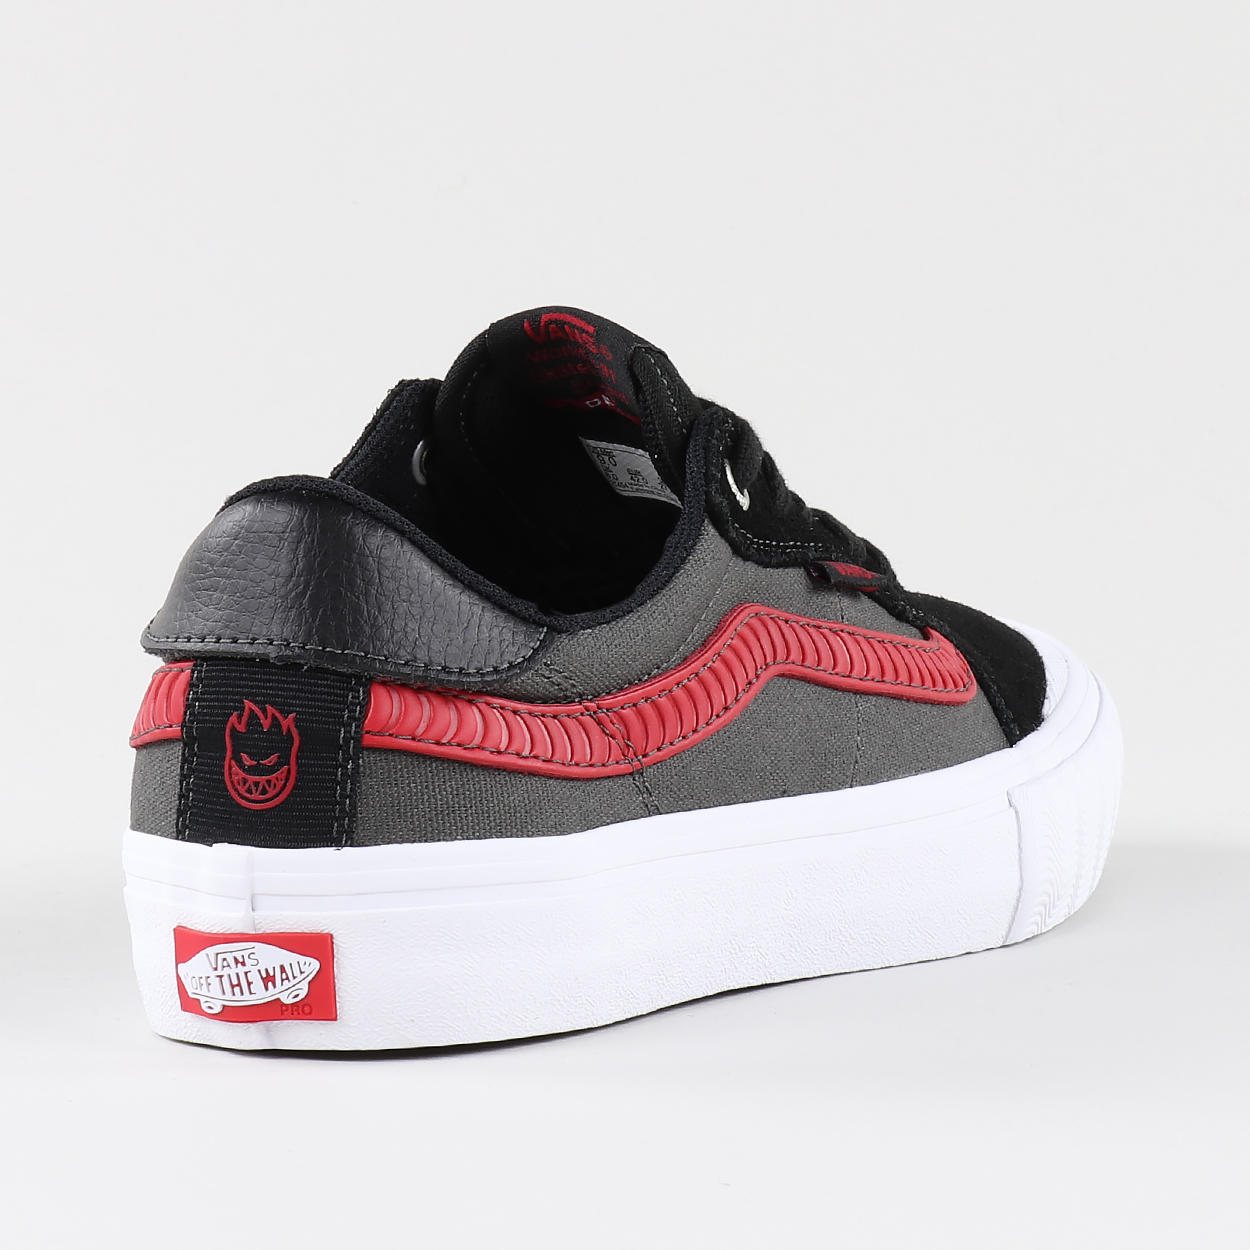 c666e54f0af Vans x Spitfire Skateboarding Style 112 Pro Shoes Black Grey Red £39.90